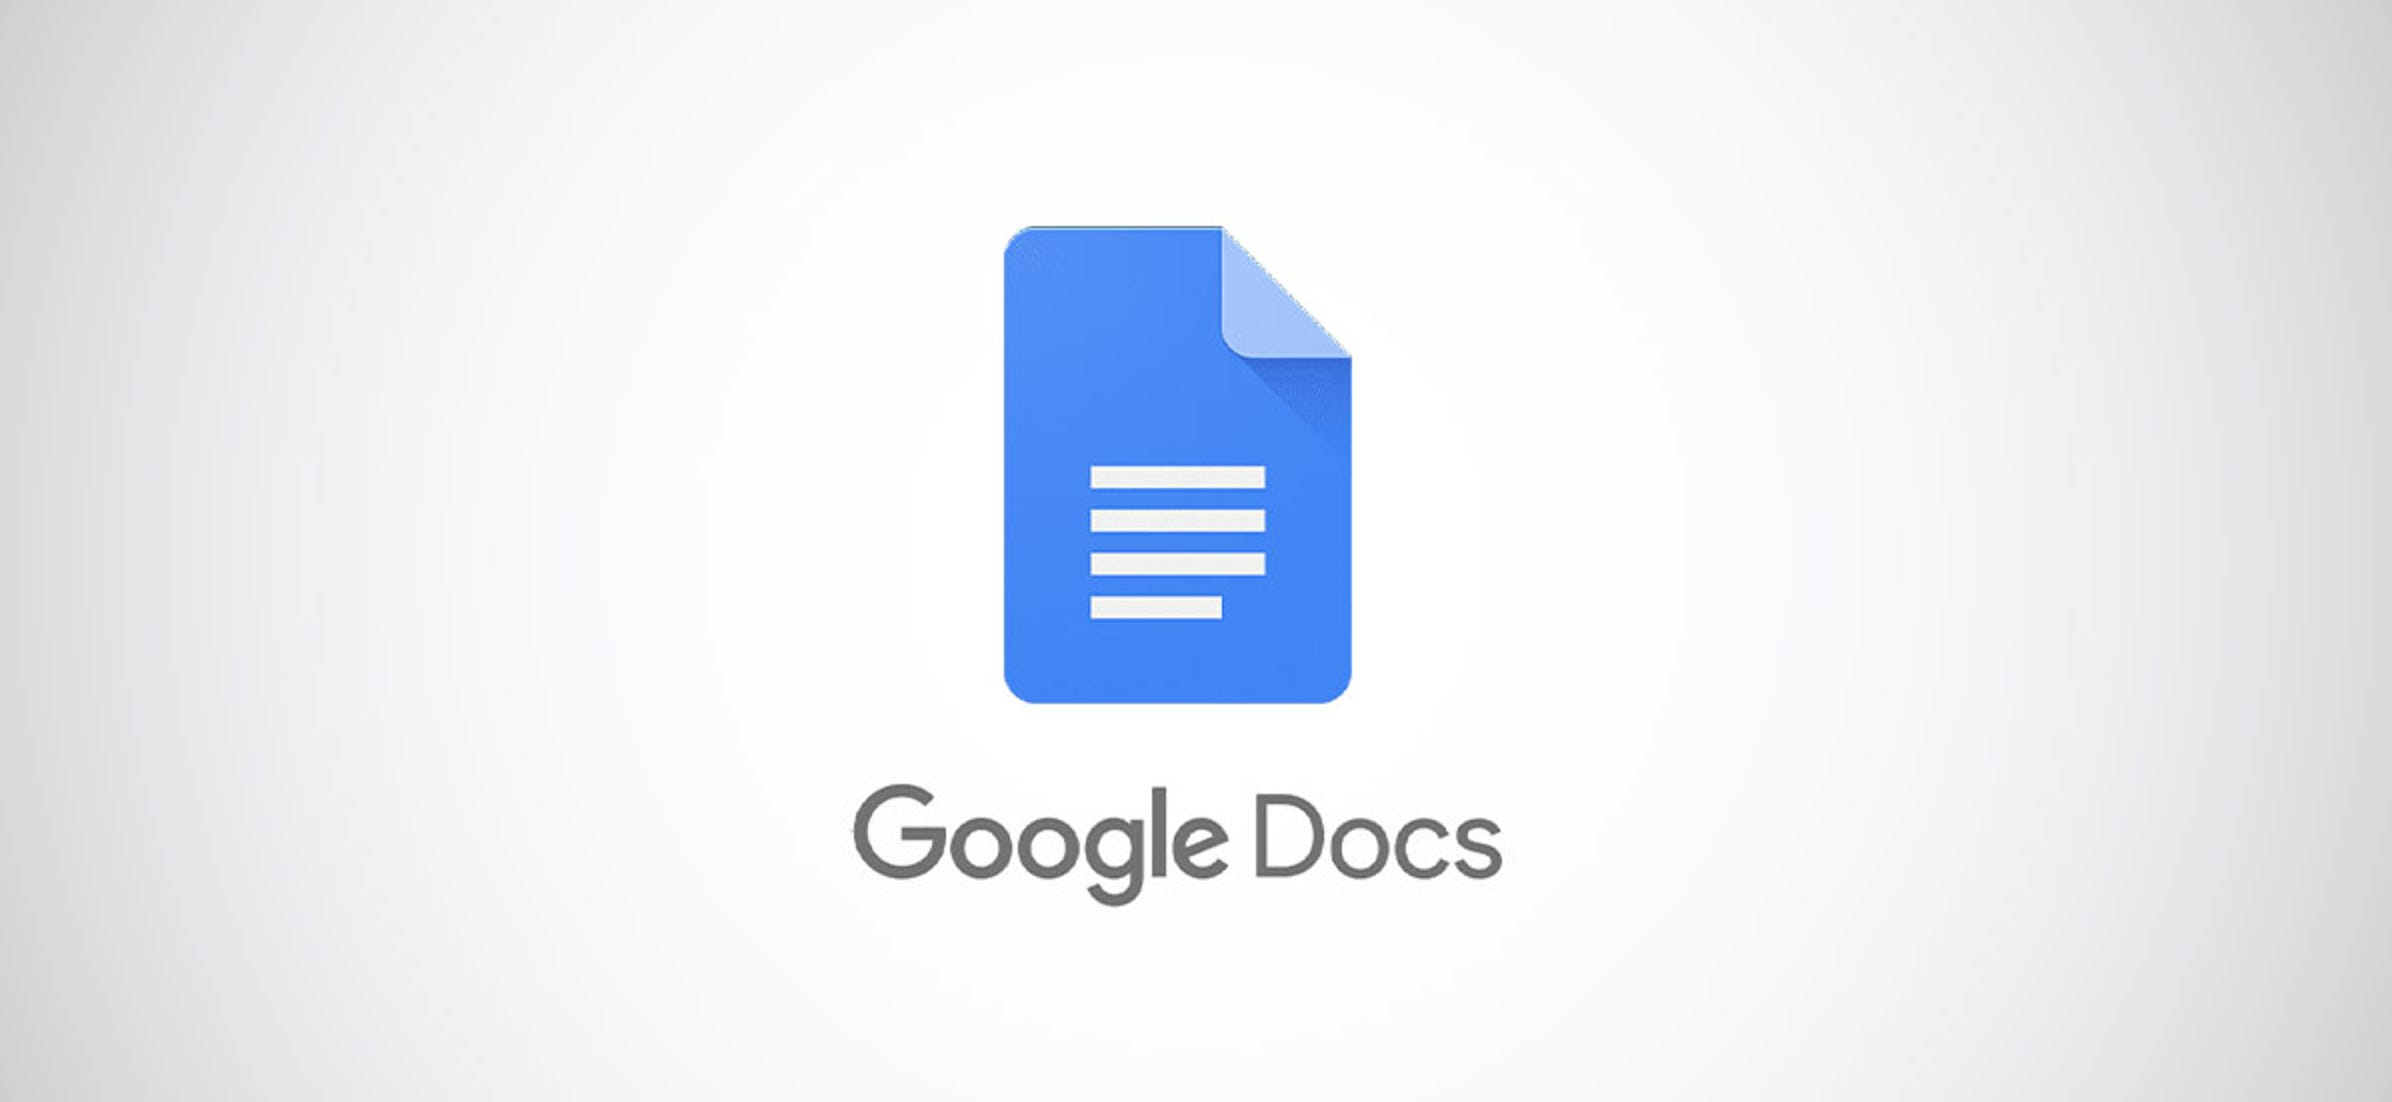 How to Add Captions to Images in Google Docs